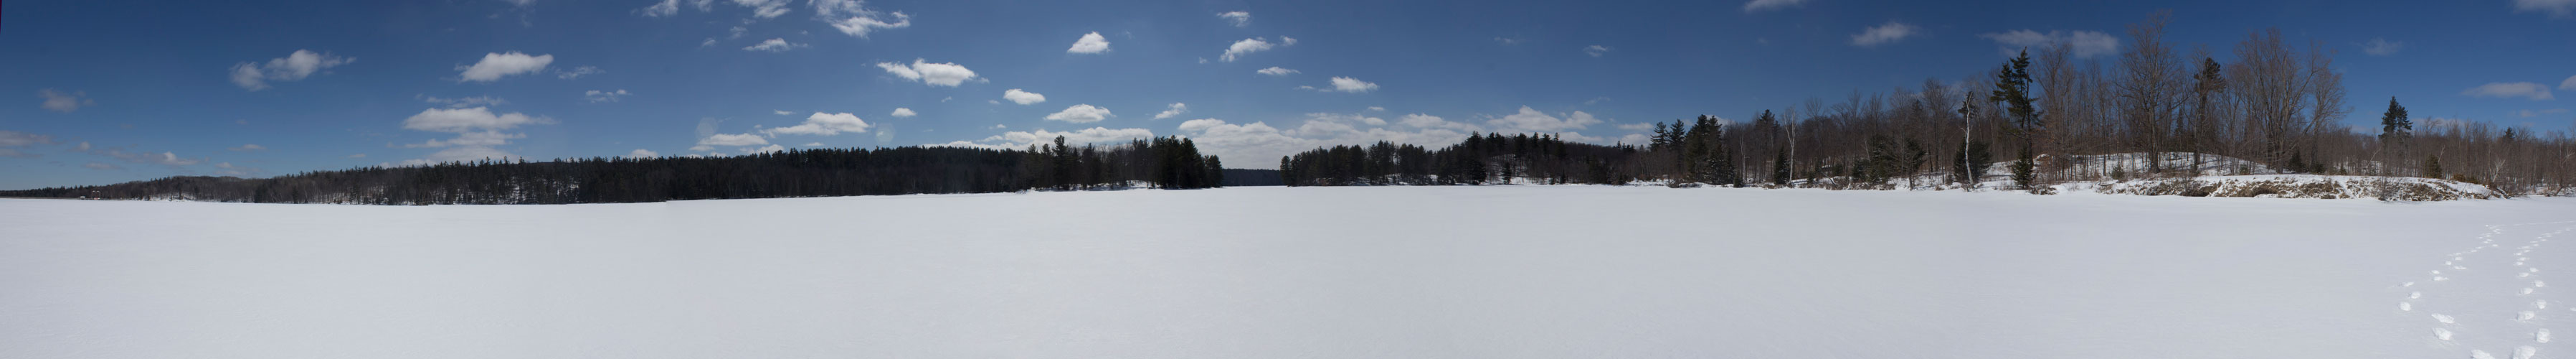 Panorama View of Madawaska River